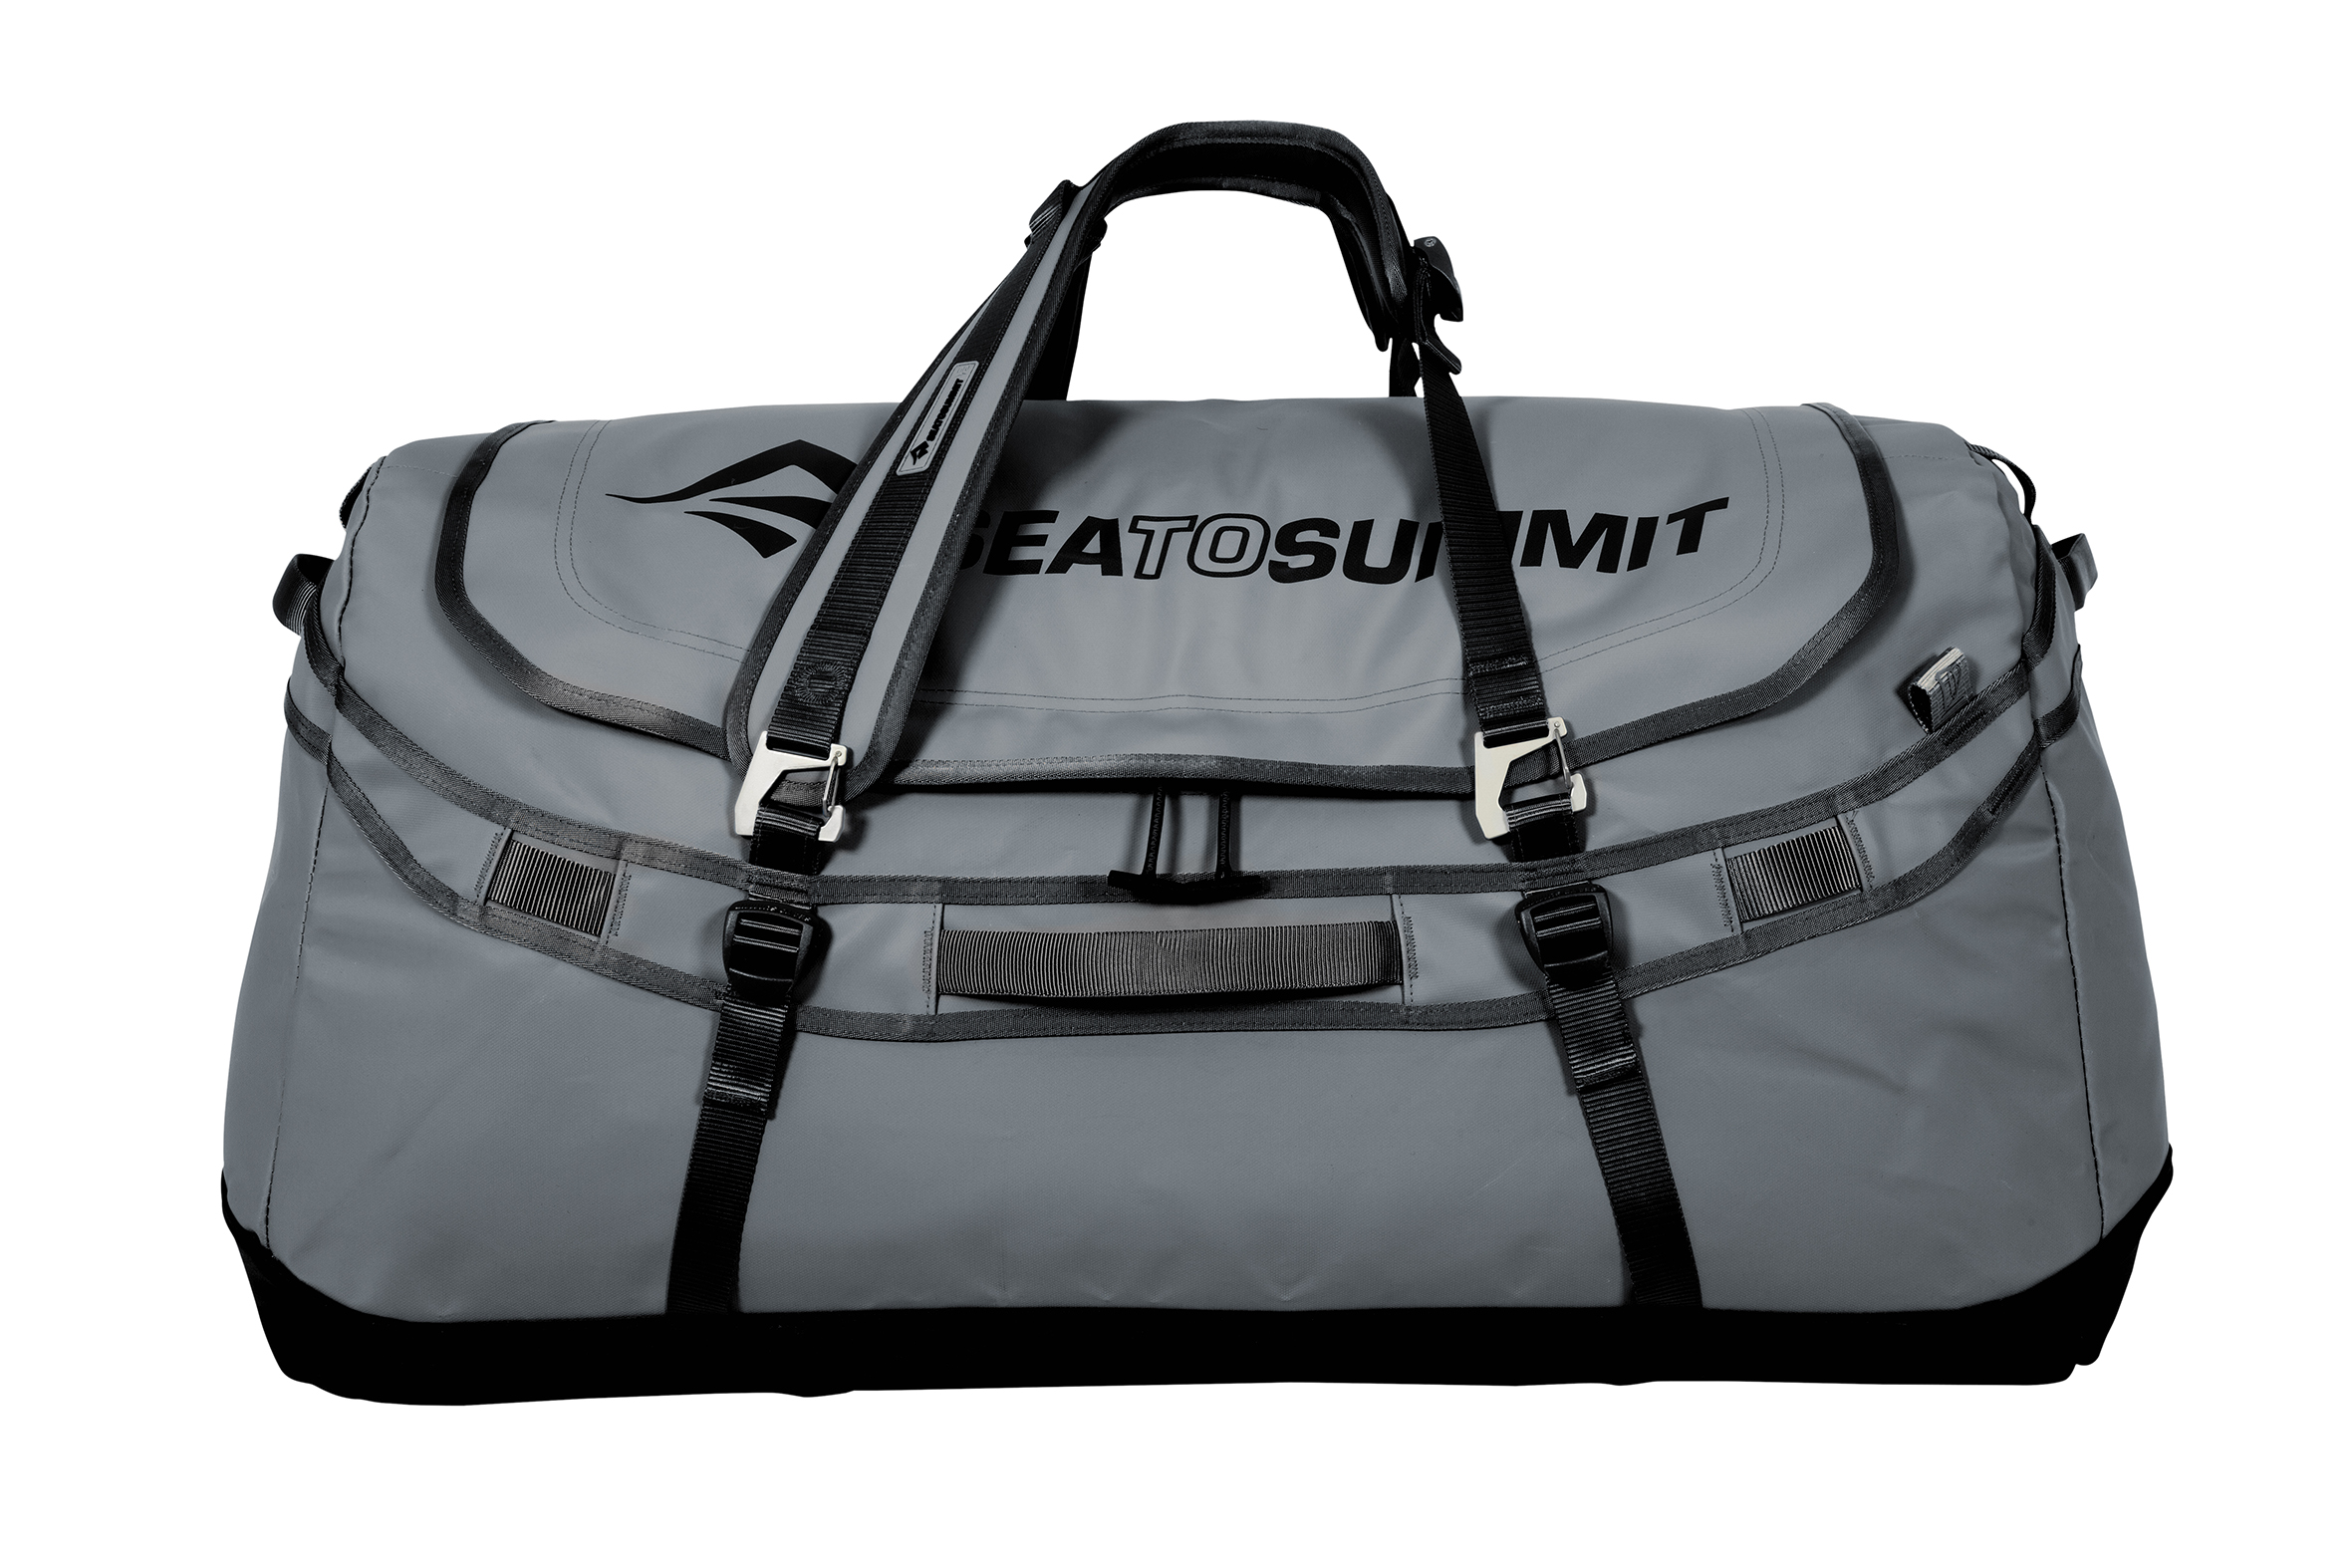 Сумка-баул Nomad Duffle 130L Sea To Summit — фото 1